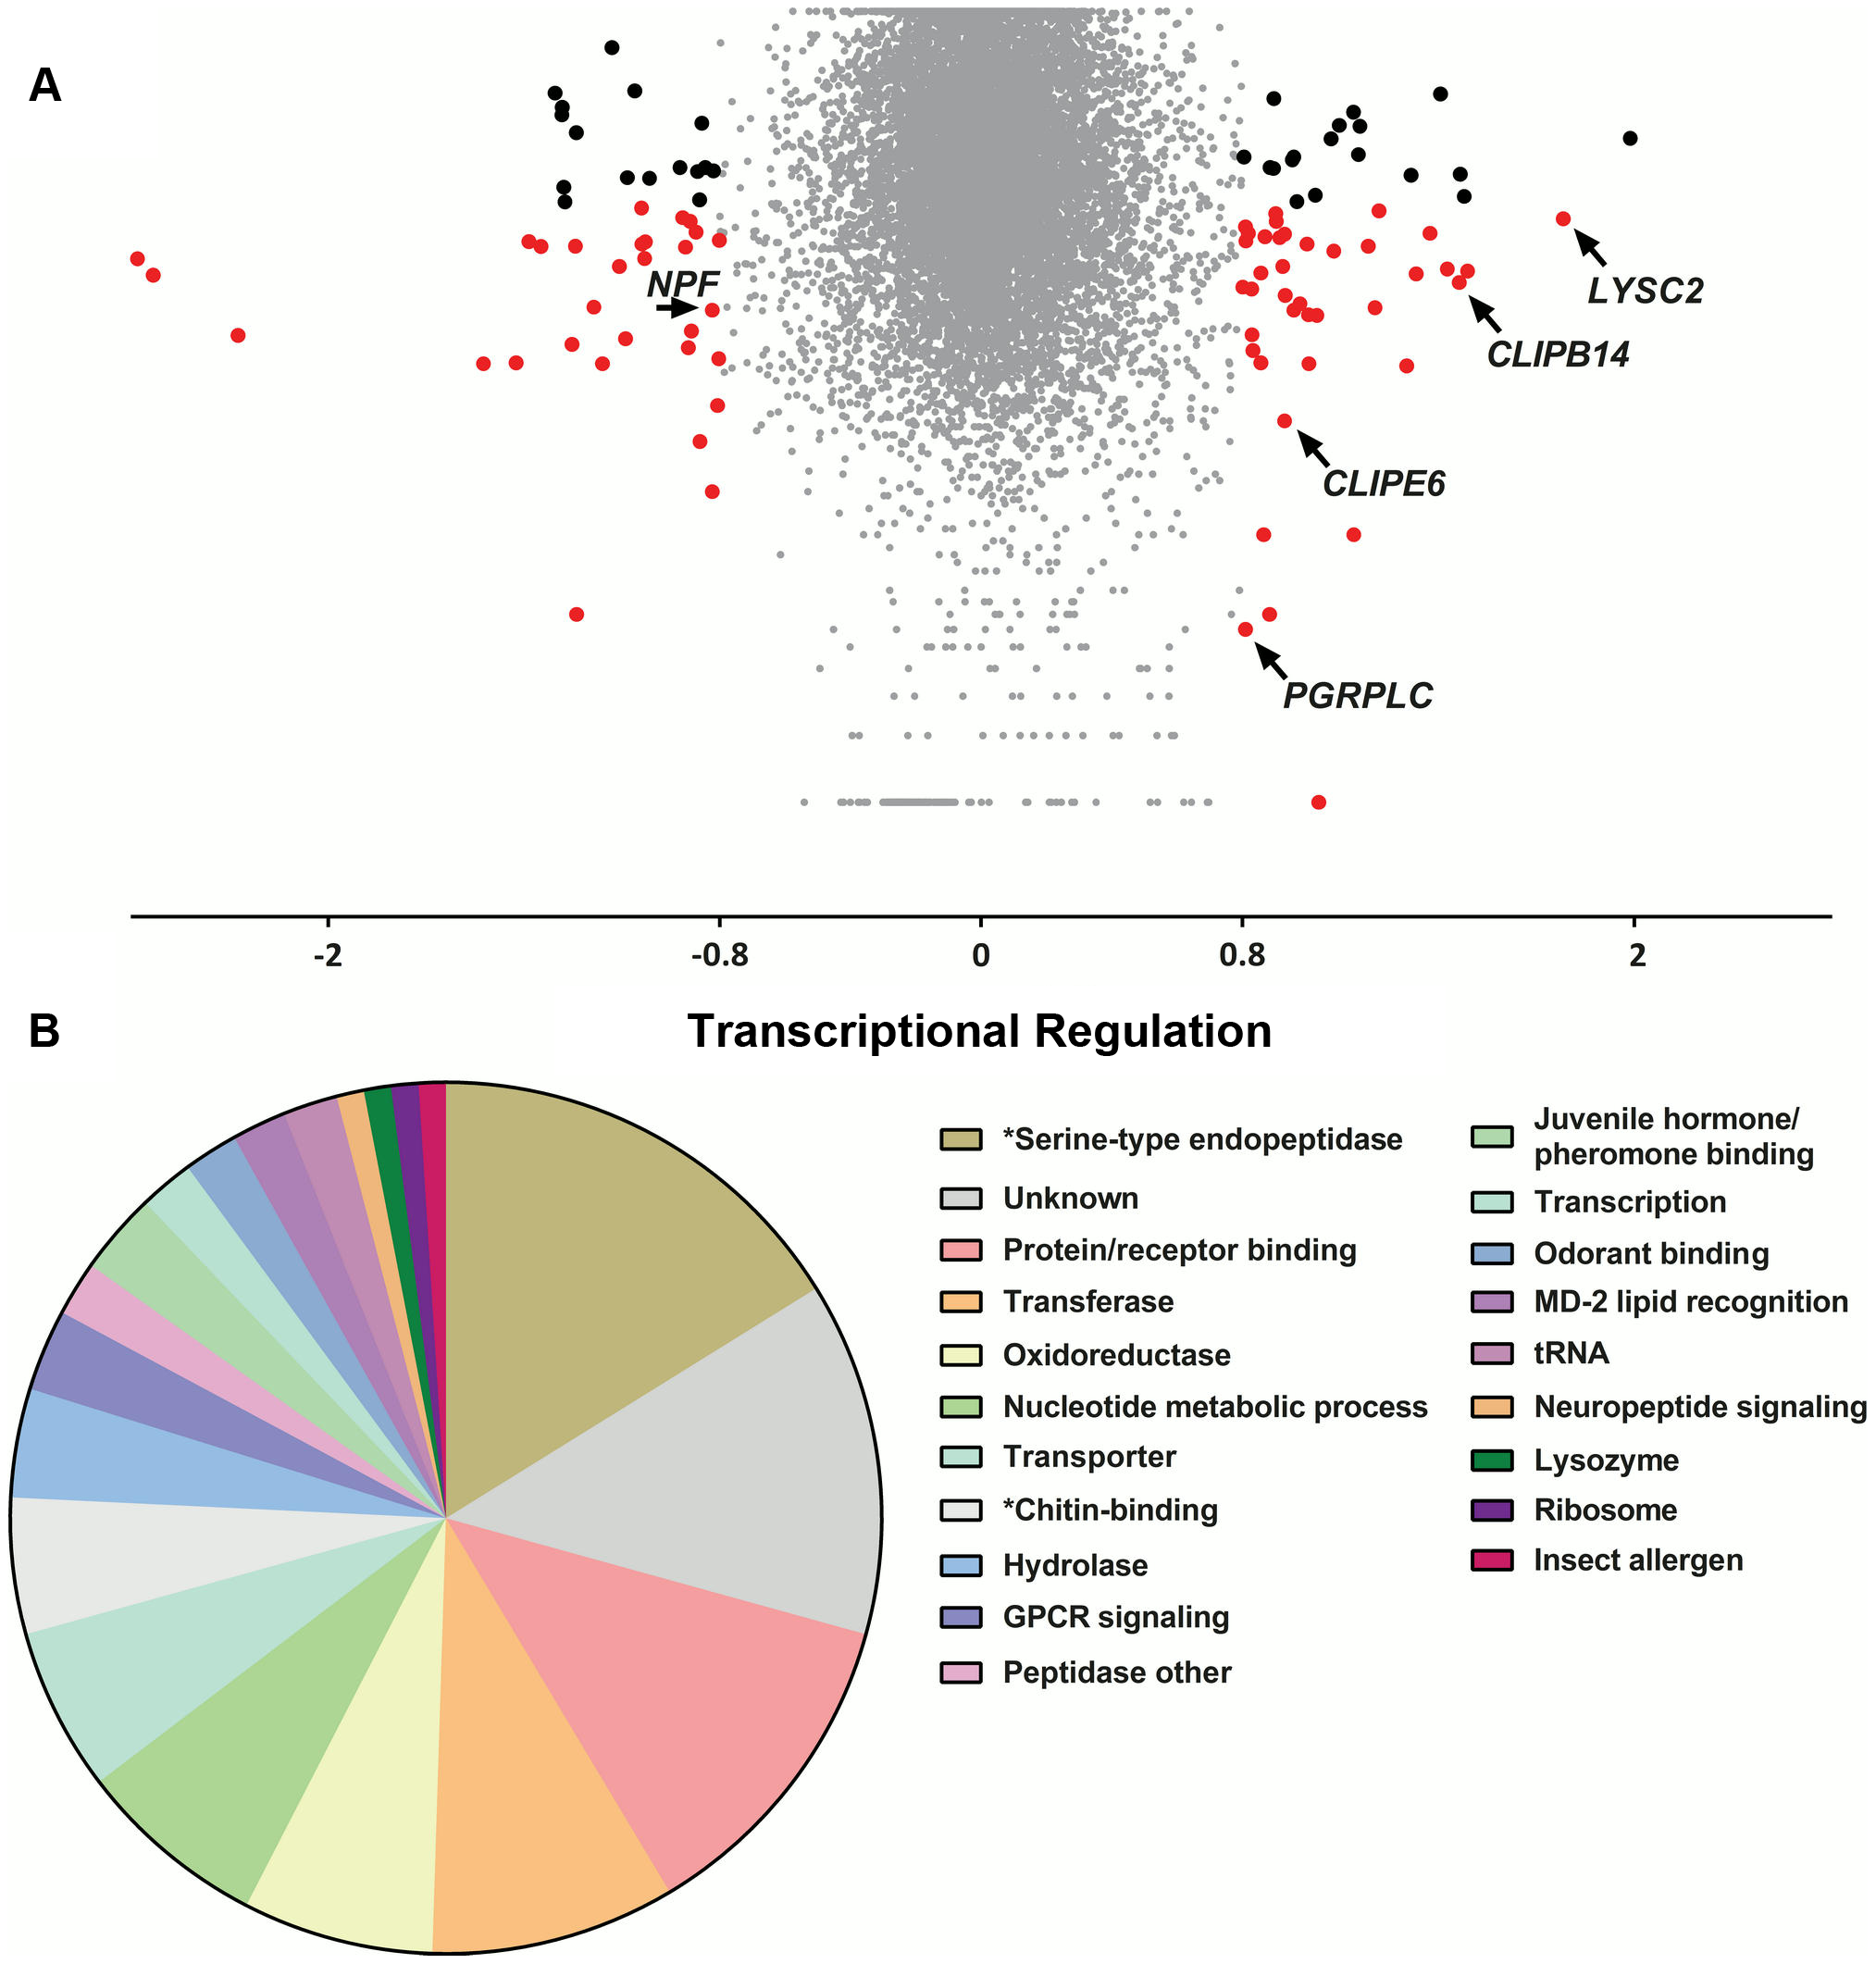 Transcriptional regulation following <i>S. marcescens</i> infection using DNA microarrays.